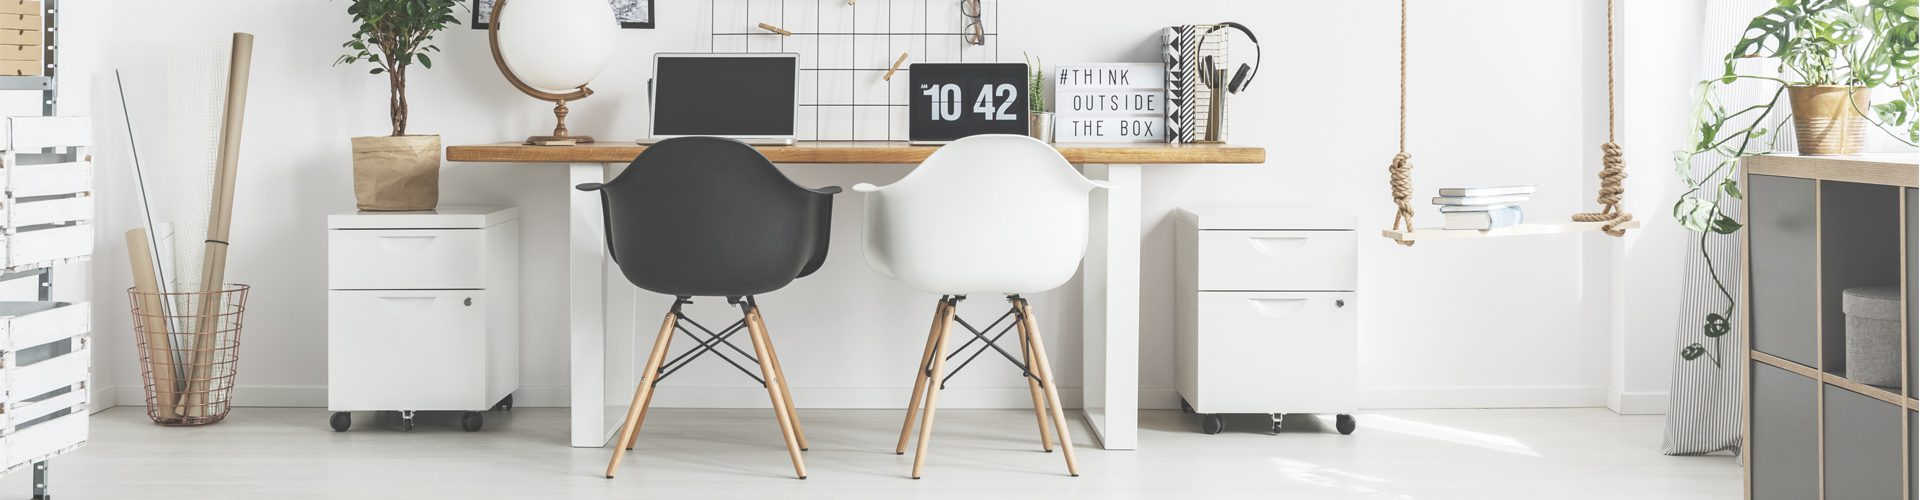 getting organised when working from home - tidy home office